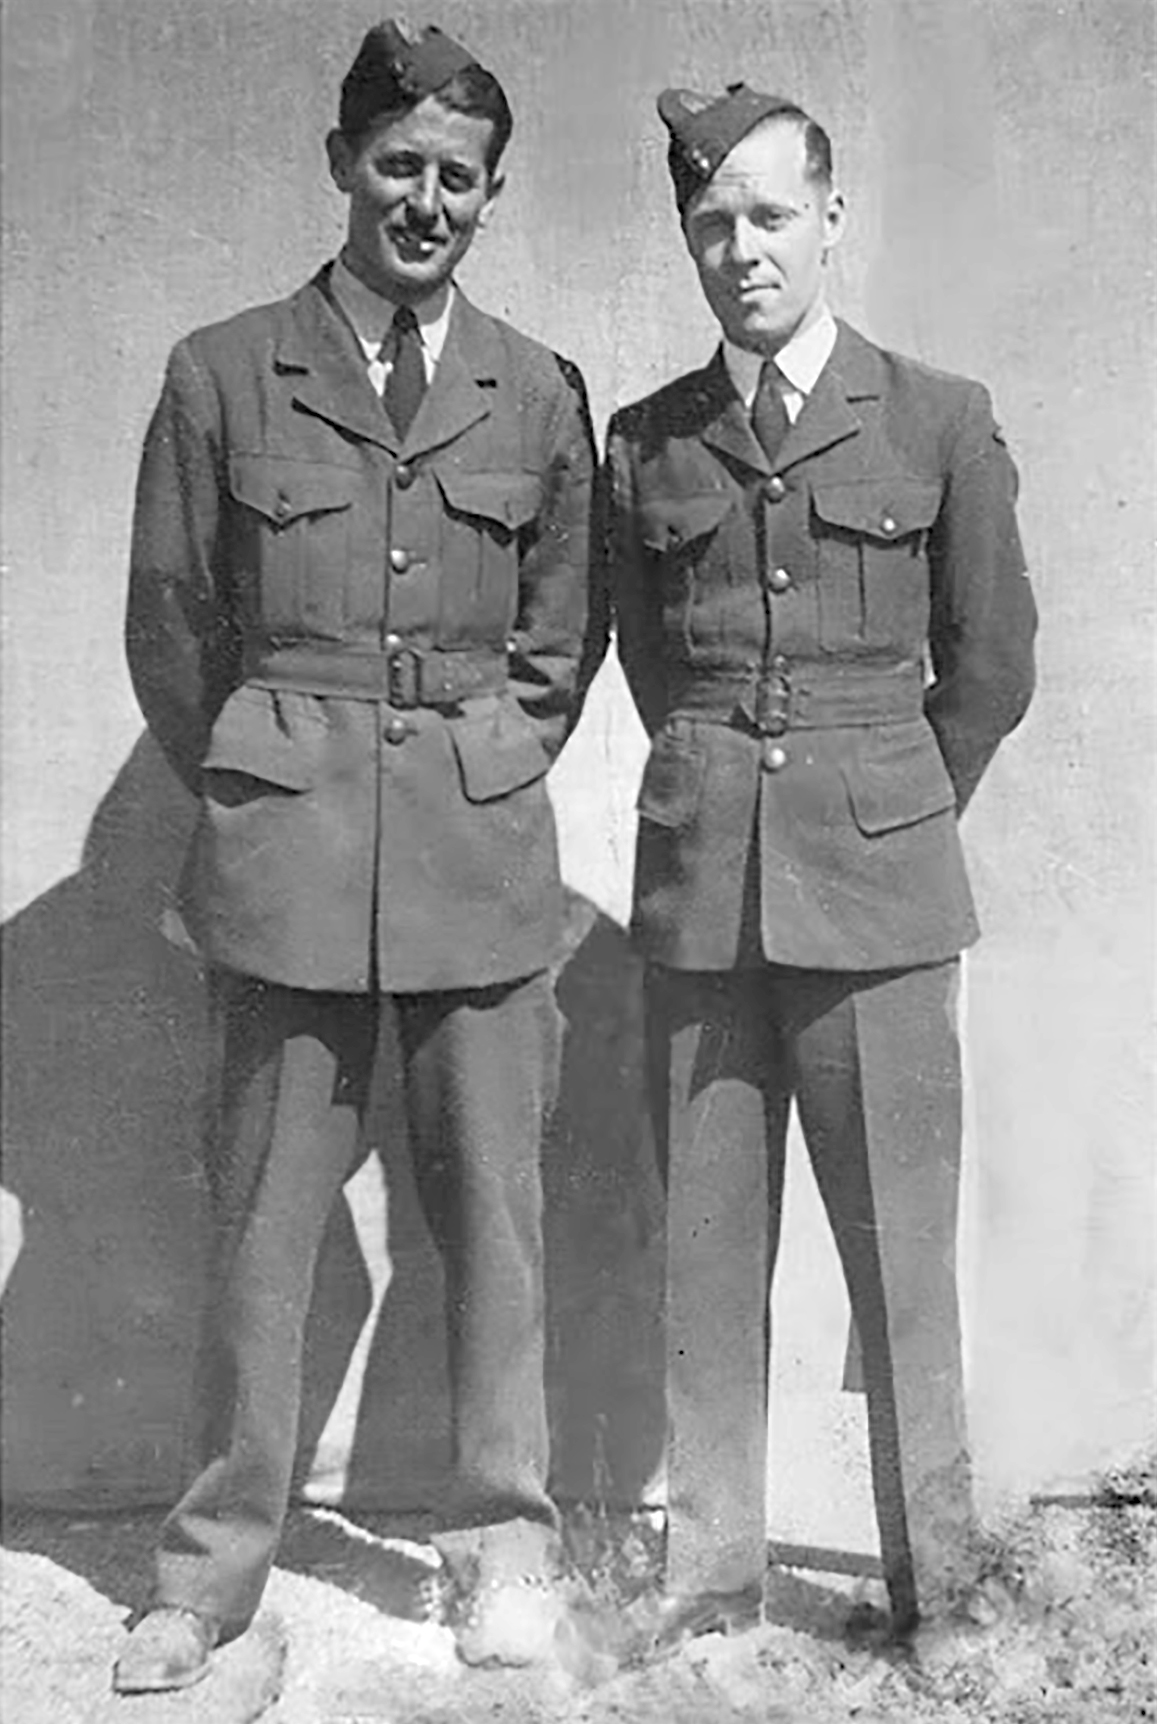 UK service Aircrew RAAF 452 Squadron Bardie and Perc Sloan 01